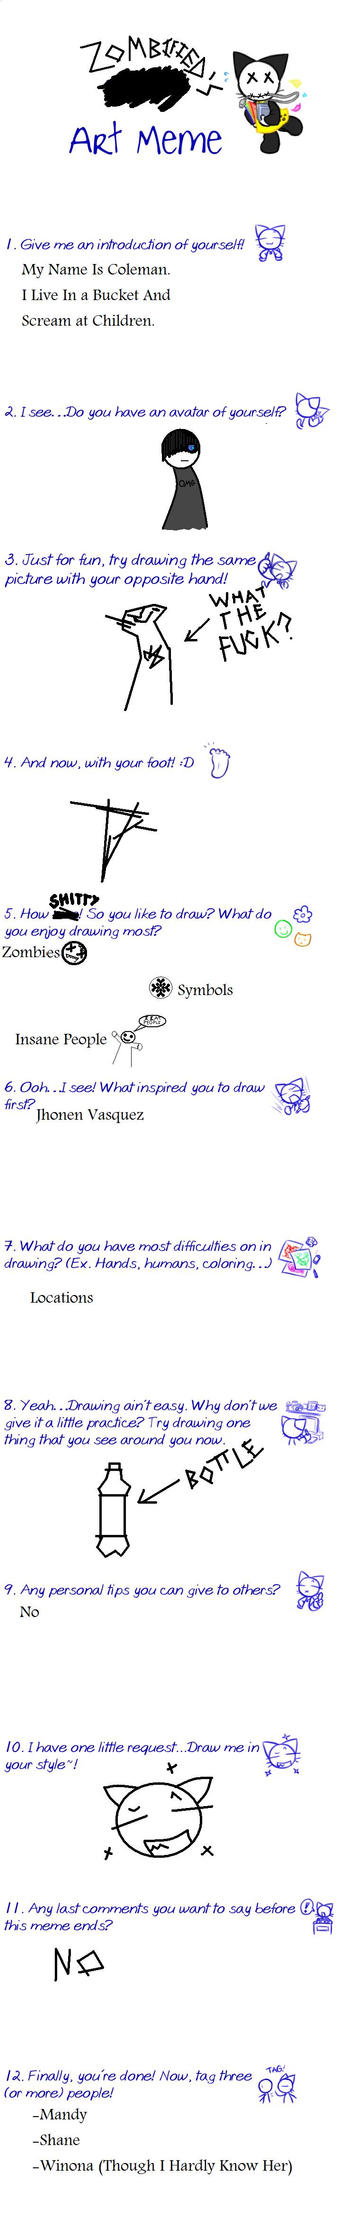 Zombified's Art meme by zOmBiEfIeD-4-LiFe